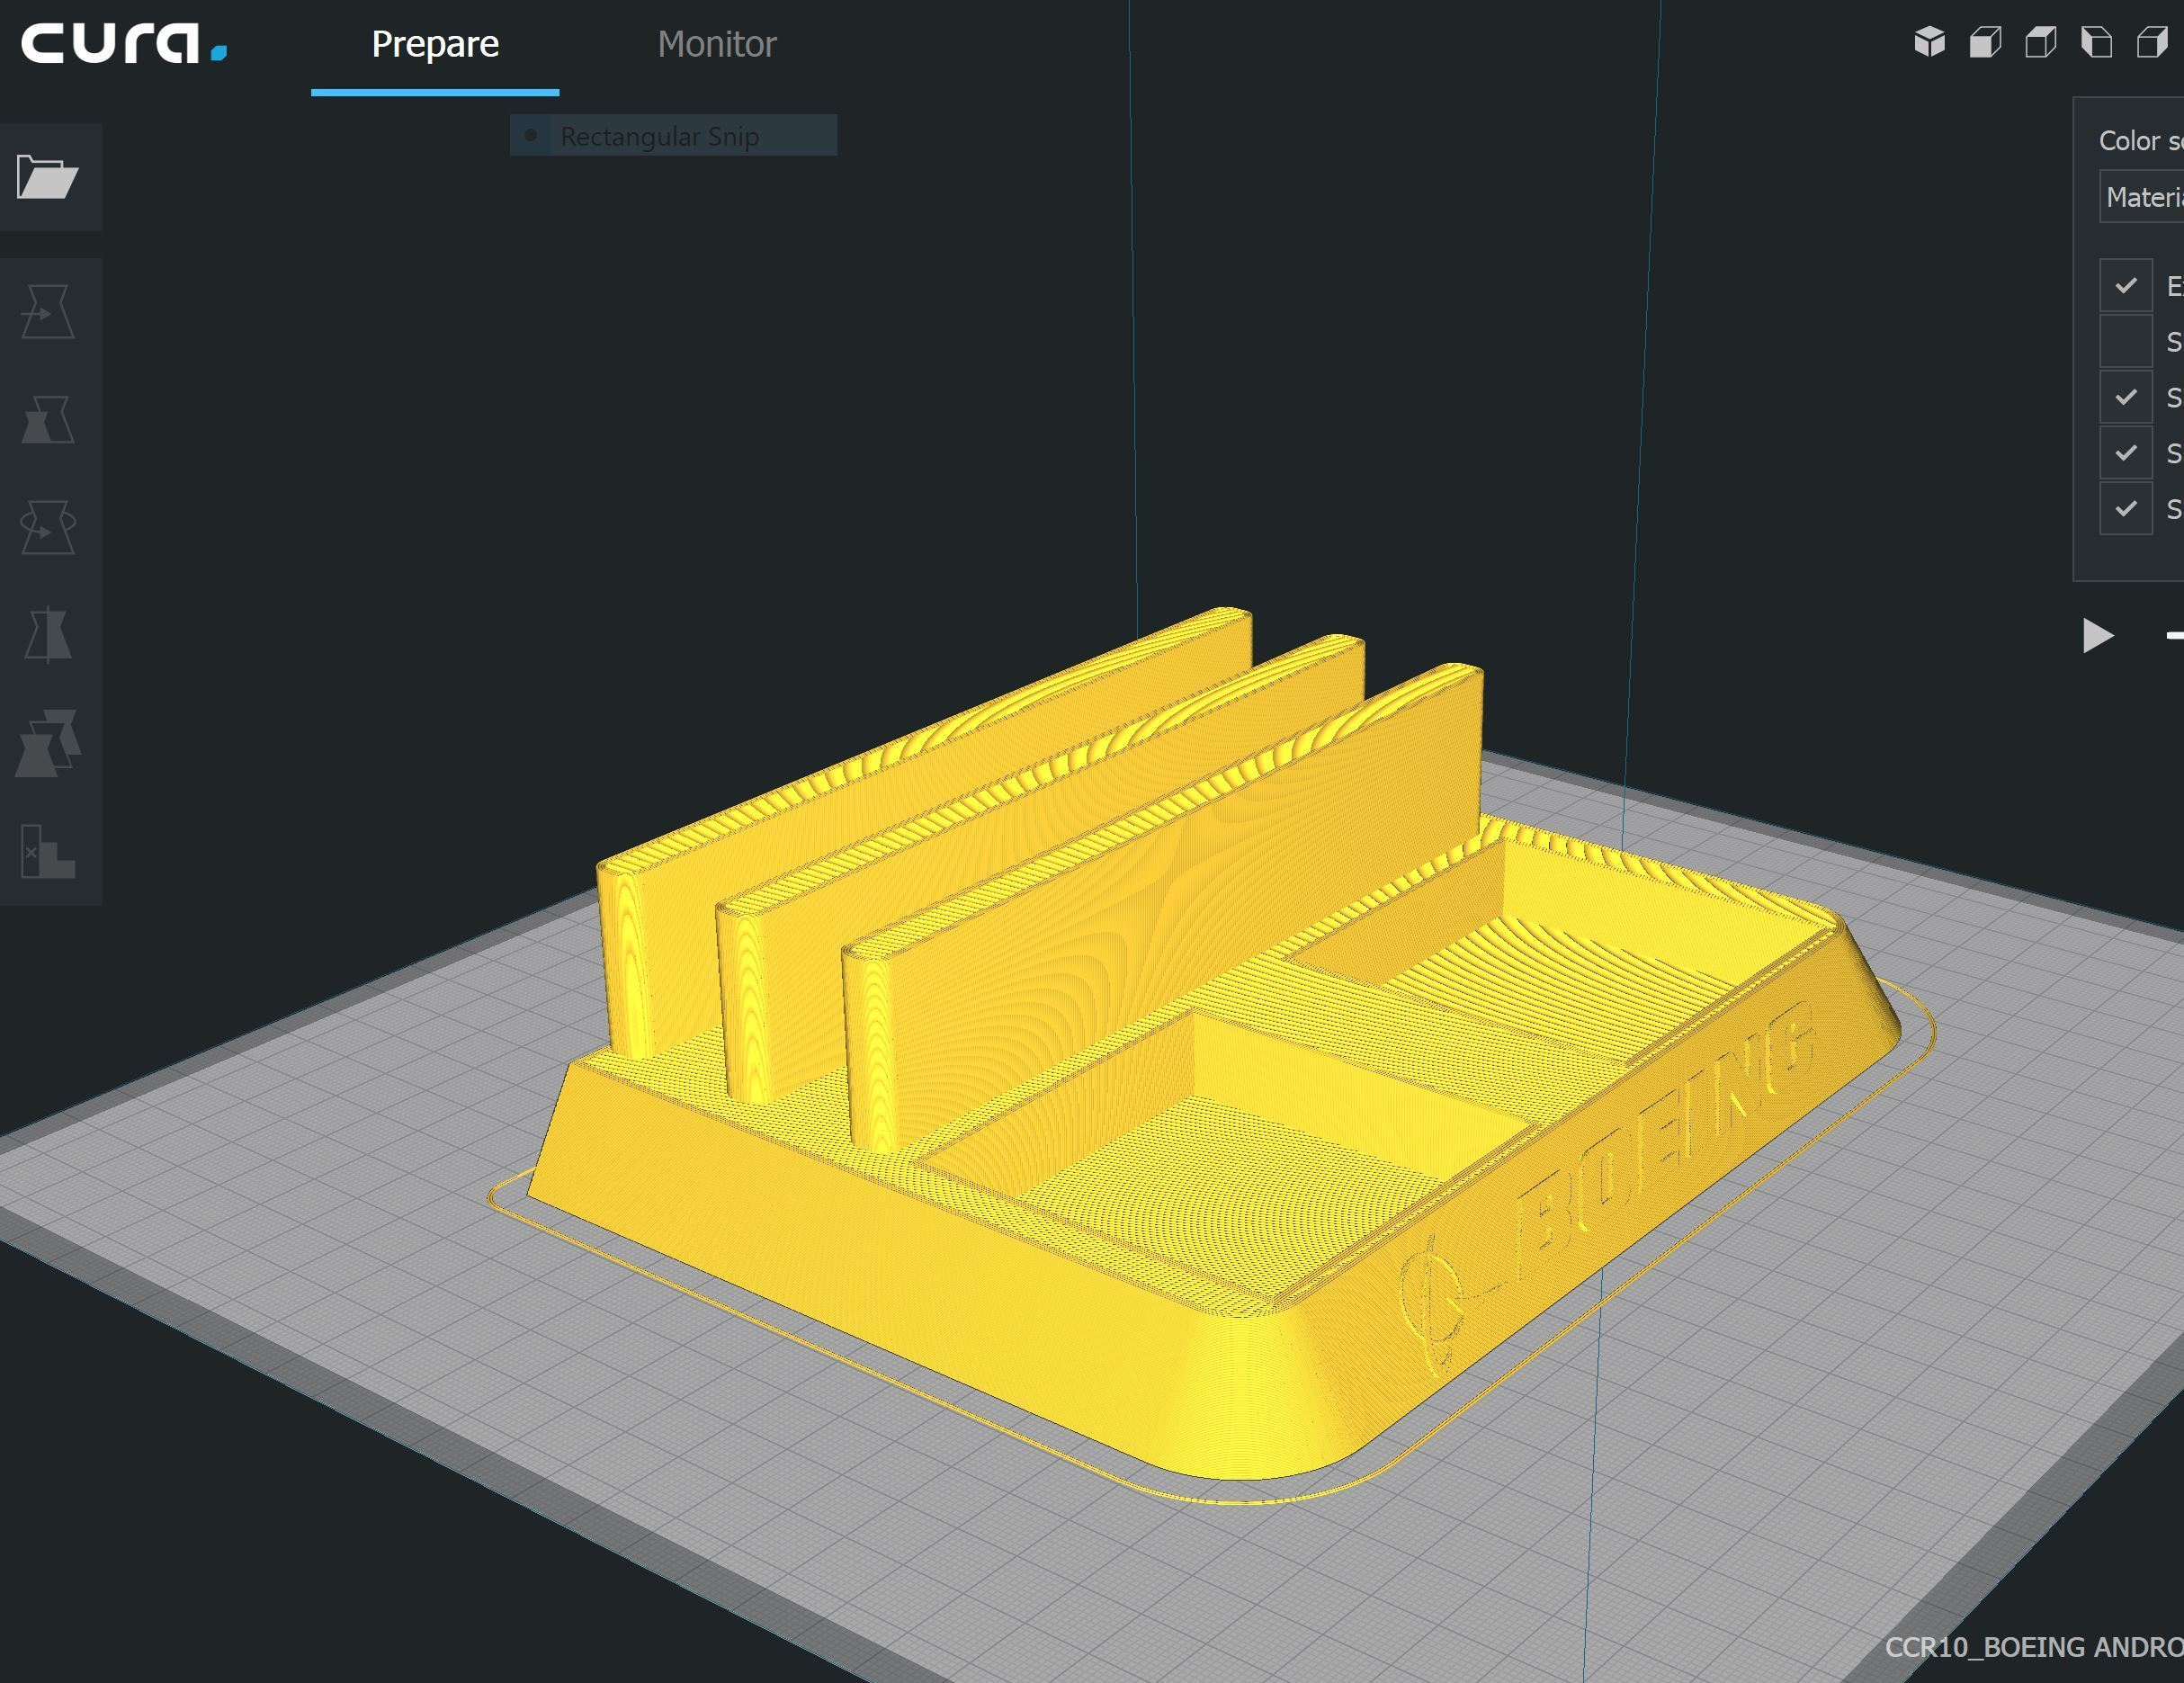 Cura-1.JPG Download STL file BOEING - ANDROID - CELL PHONE AND TABLET HOLDER • 3D printing model, Trikonics